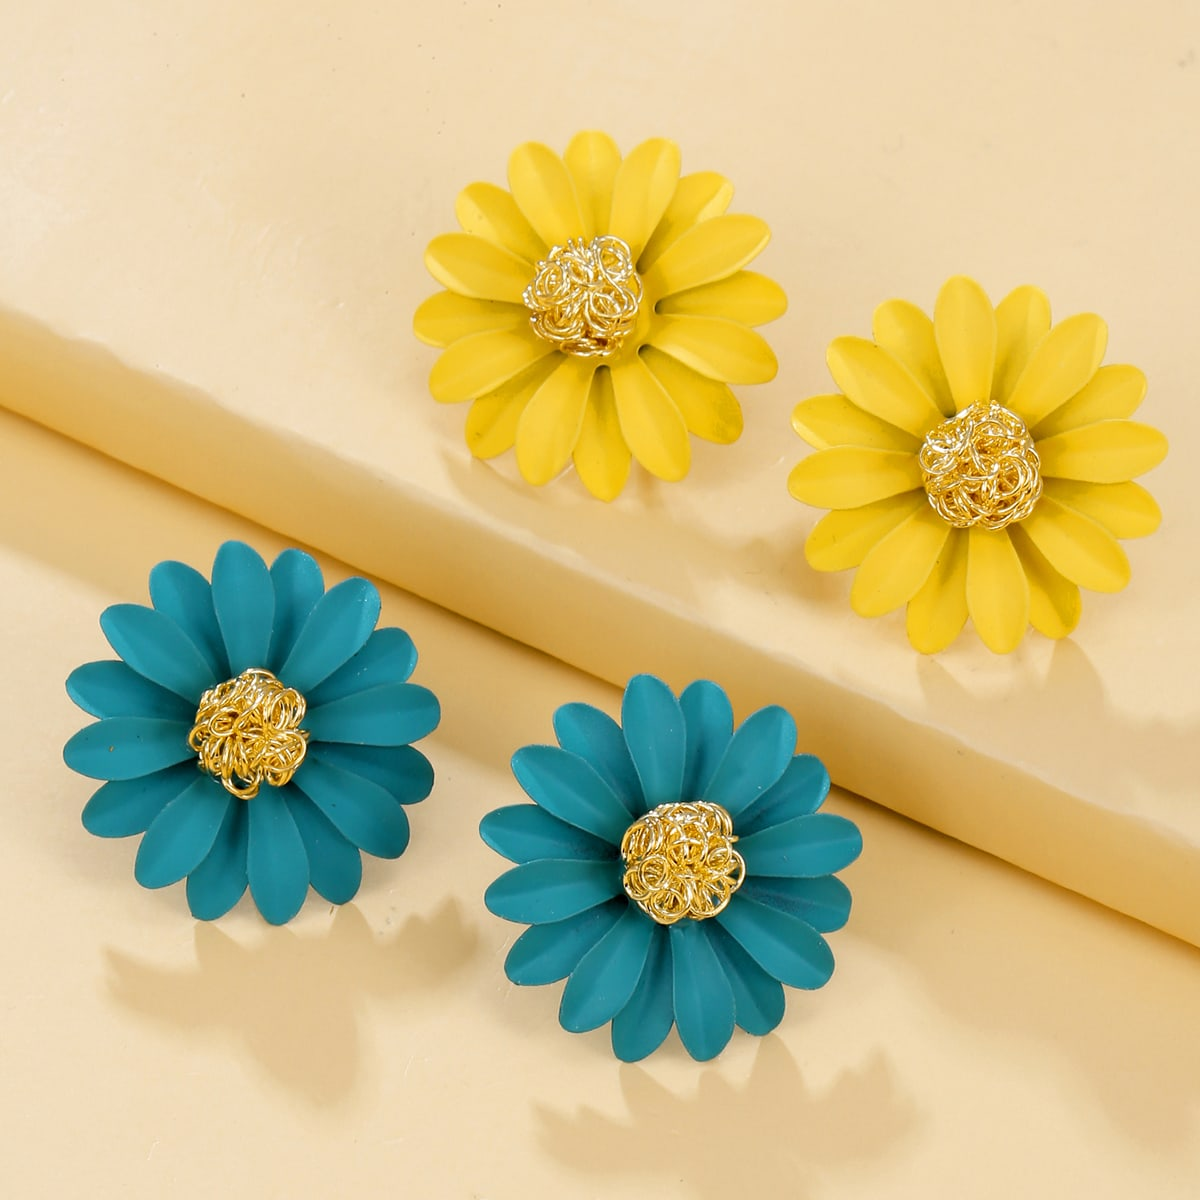 2pairs Flower Design Stud Earrings, SHEIN  - buy with discount